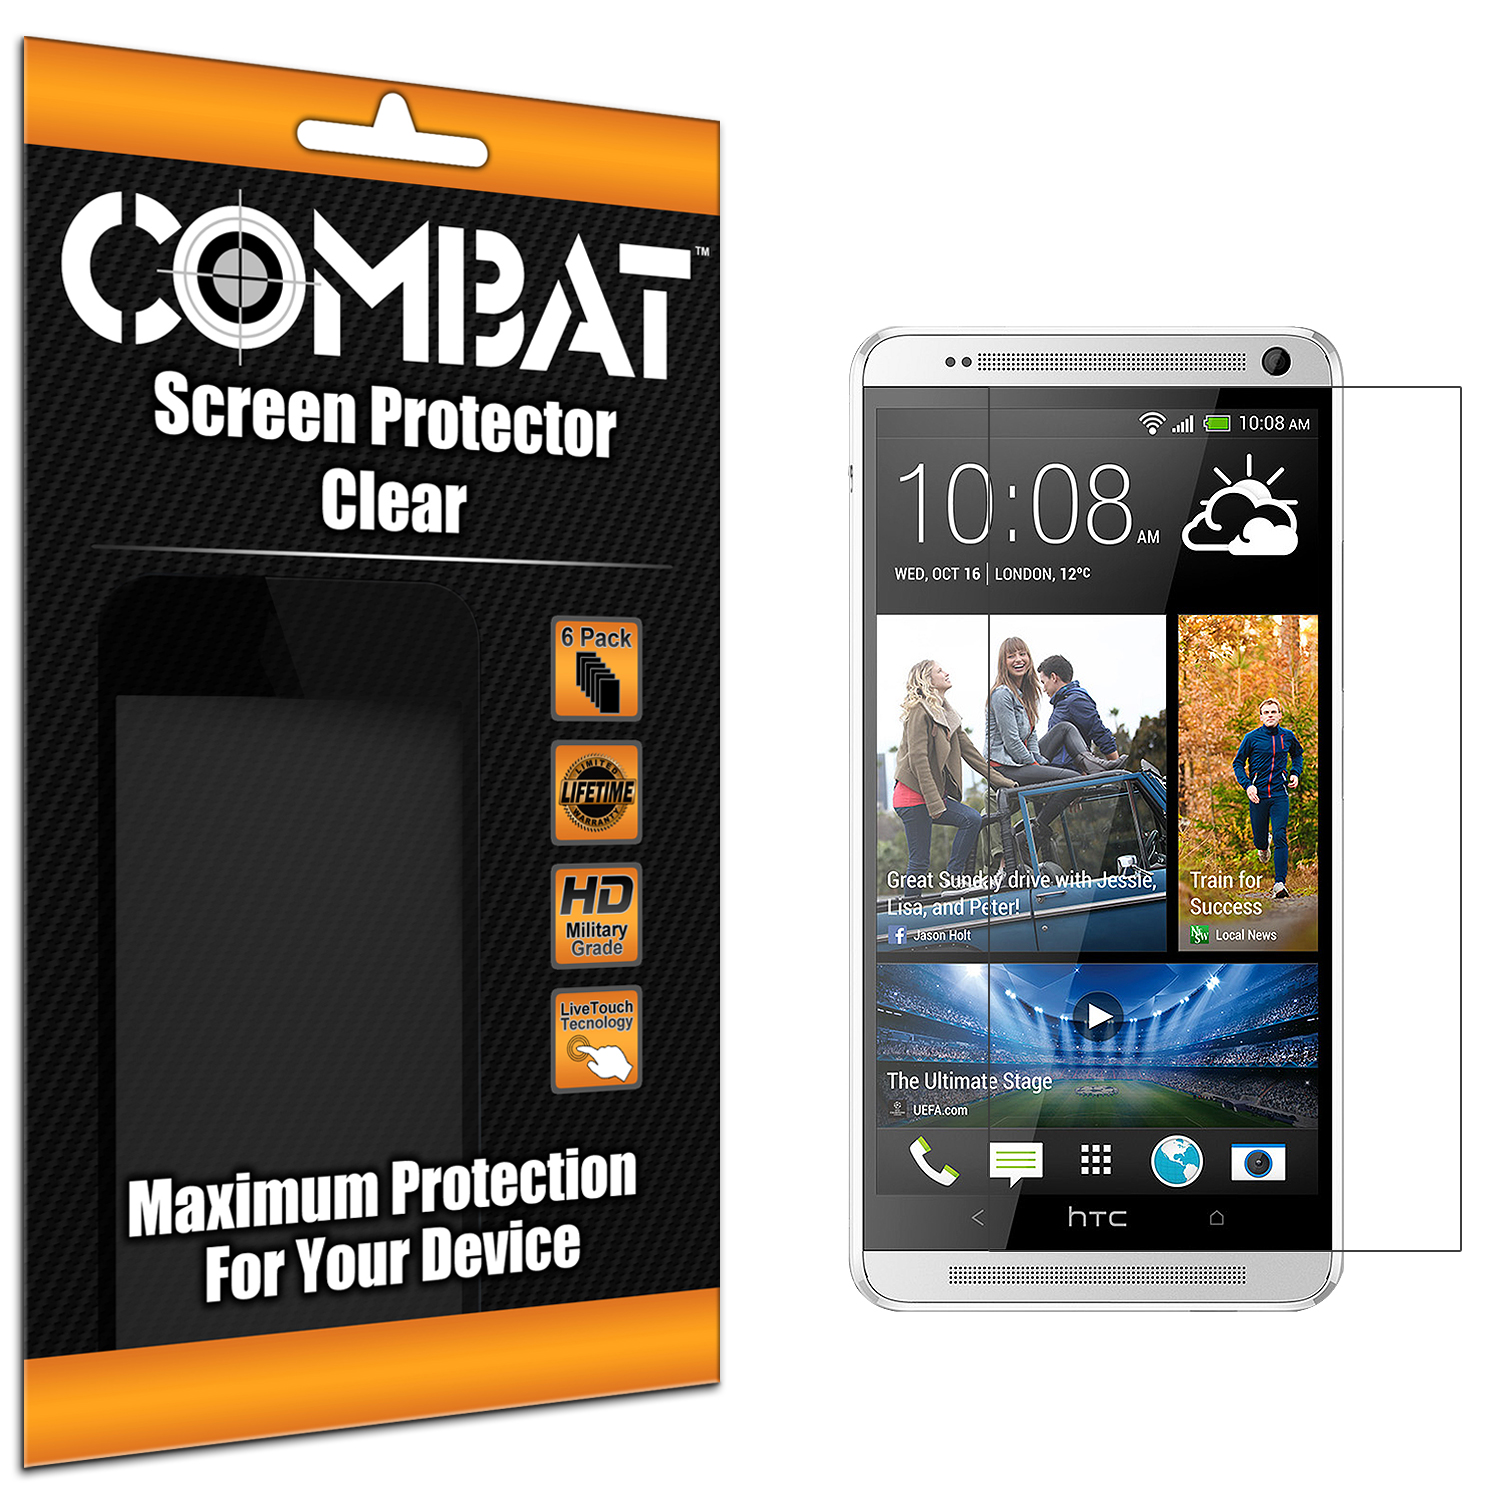 HTC One Max Combat 6 Pack HD Clear Screen Protector